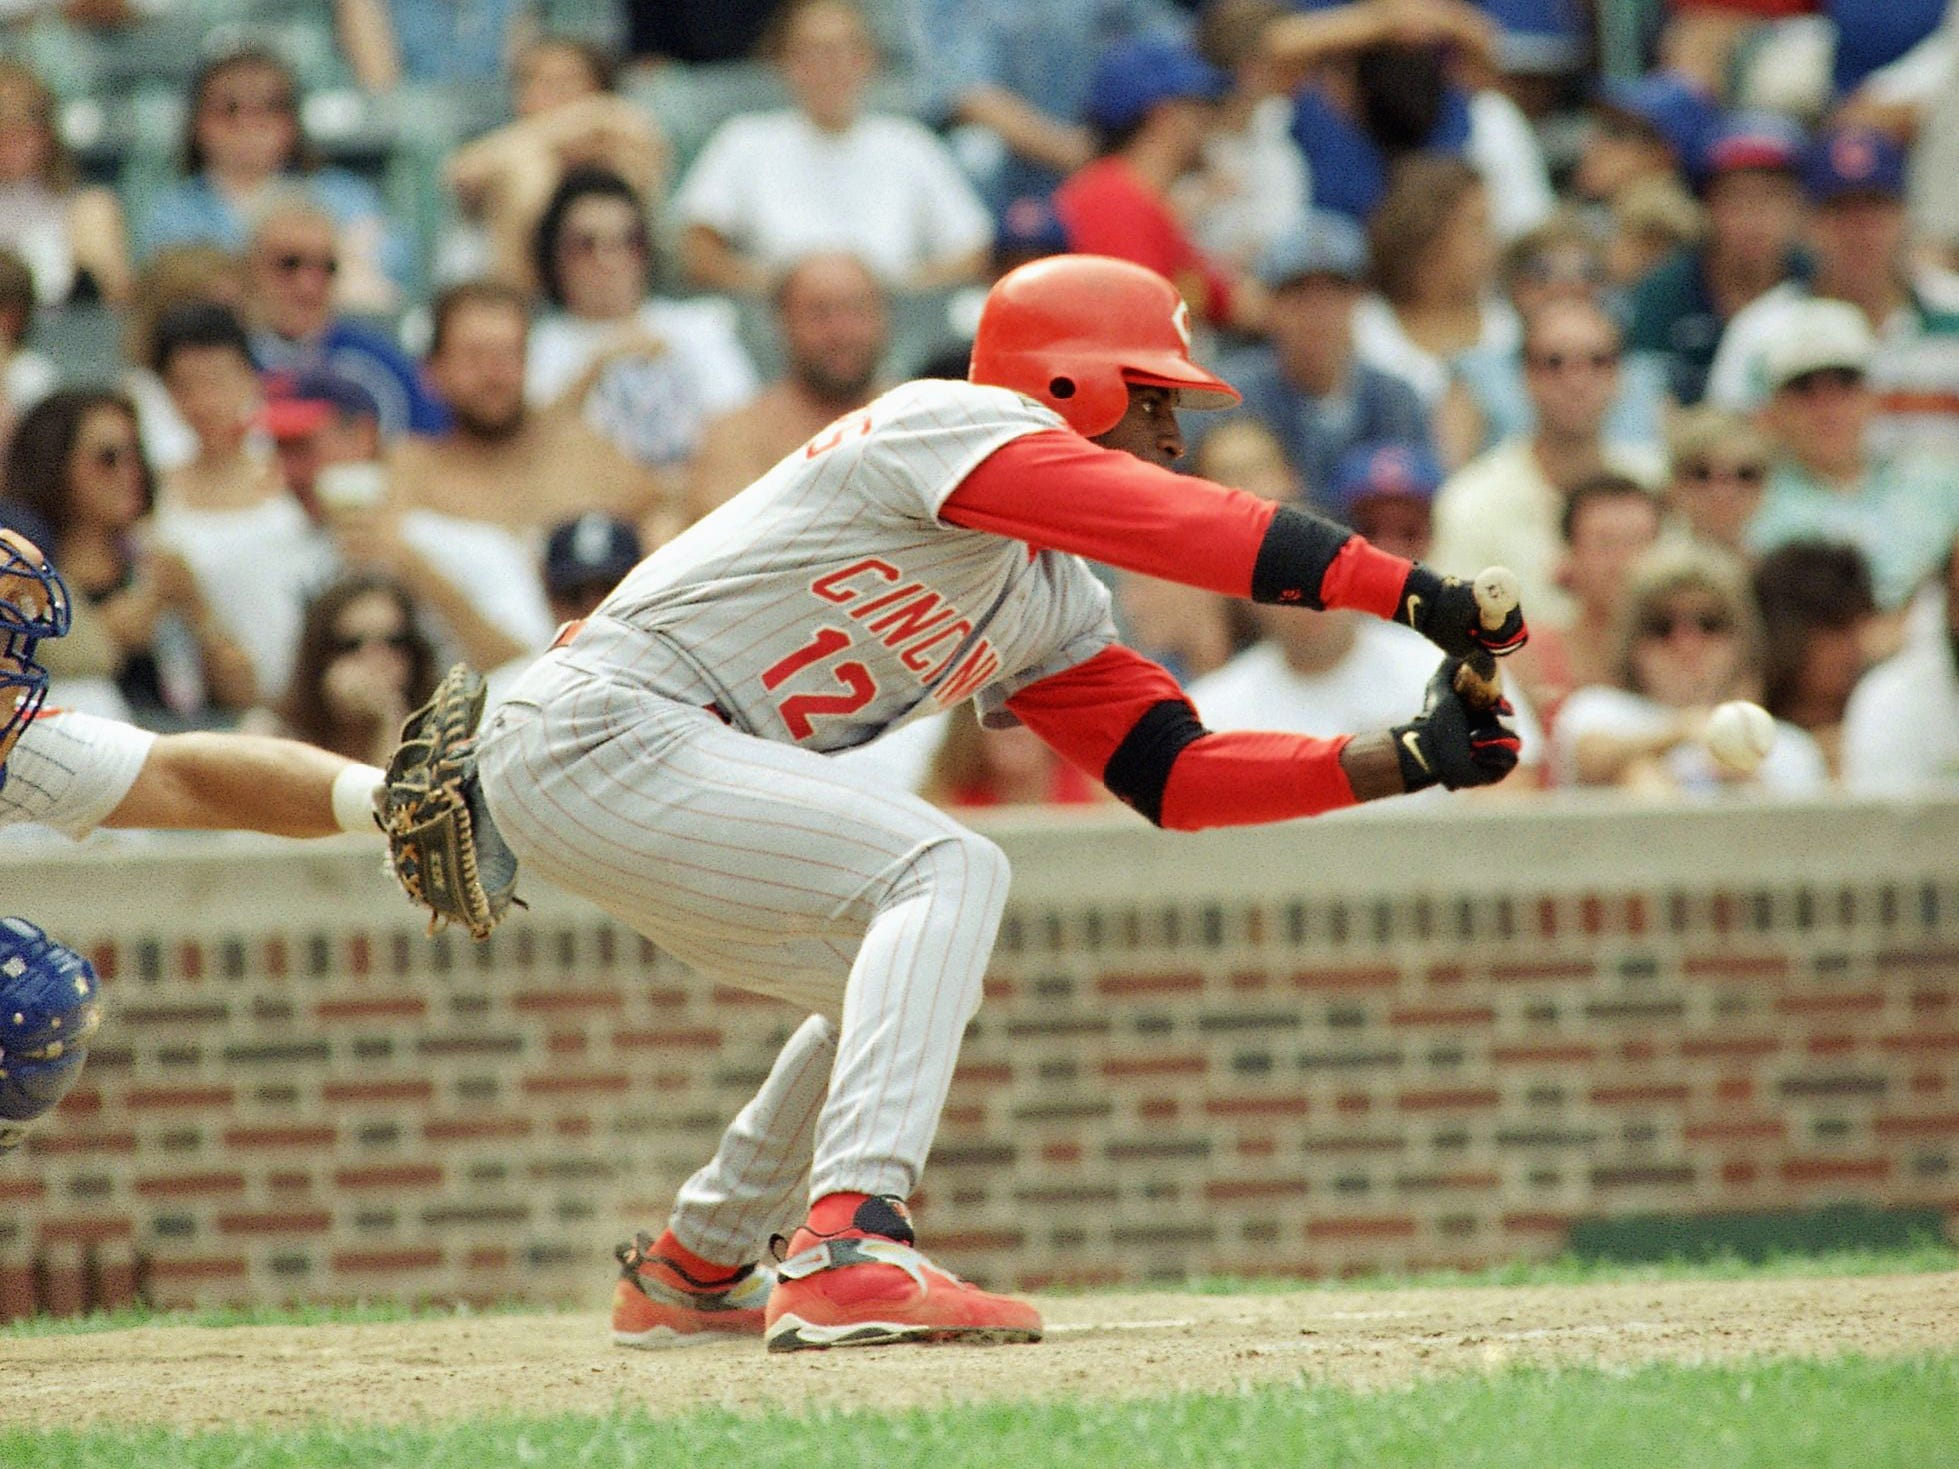 Cincinnati Reds' Deion Sanders bunts as Chicago Cubs catcher Mark Parent waits for the ball in the 8th inning on Sunday, July 24, 1994 in Chicago. The Cubs beat the Reds 3-0. (AP Photo/Doug Atkins)